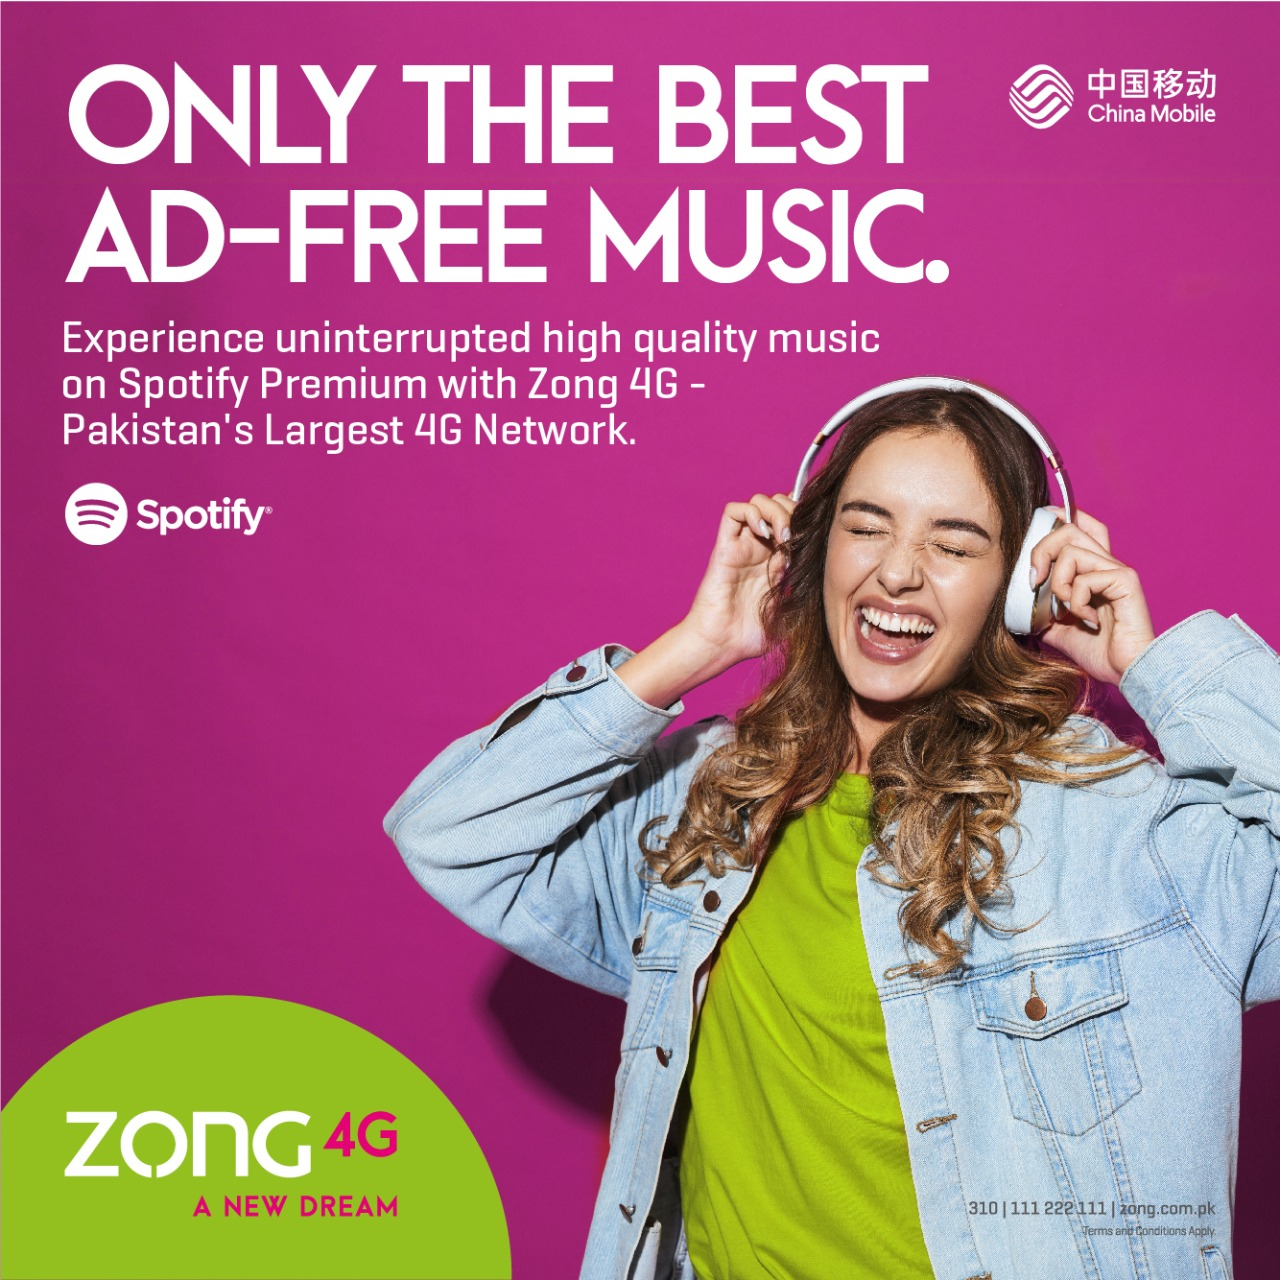 Zong 4G Brings Spotify To Millions of Pakistanis!